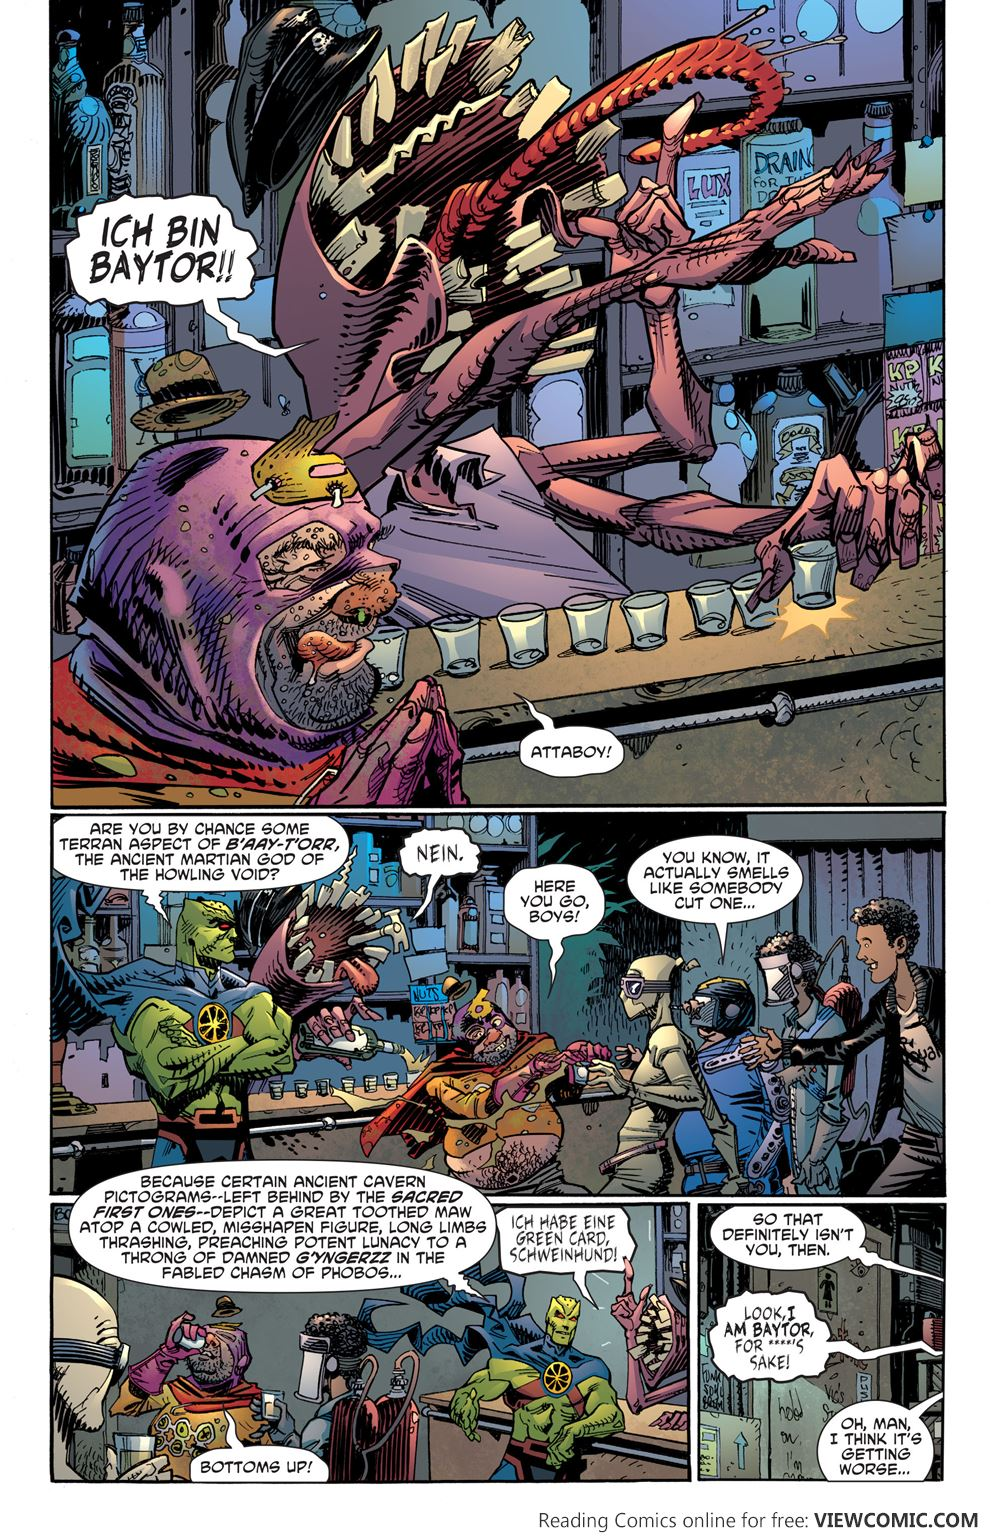 DC - All-Star Section 8: The Traumatization of J'onn J ...